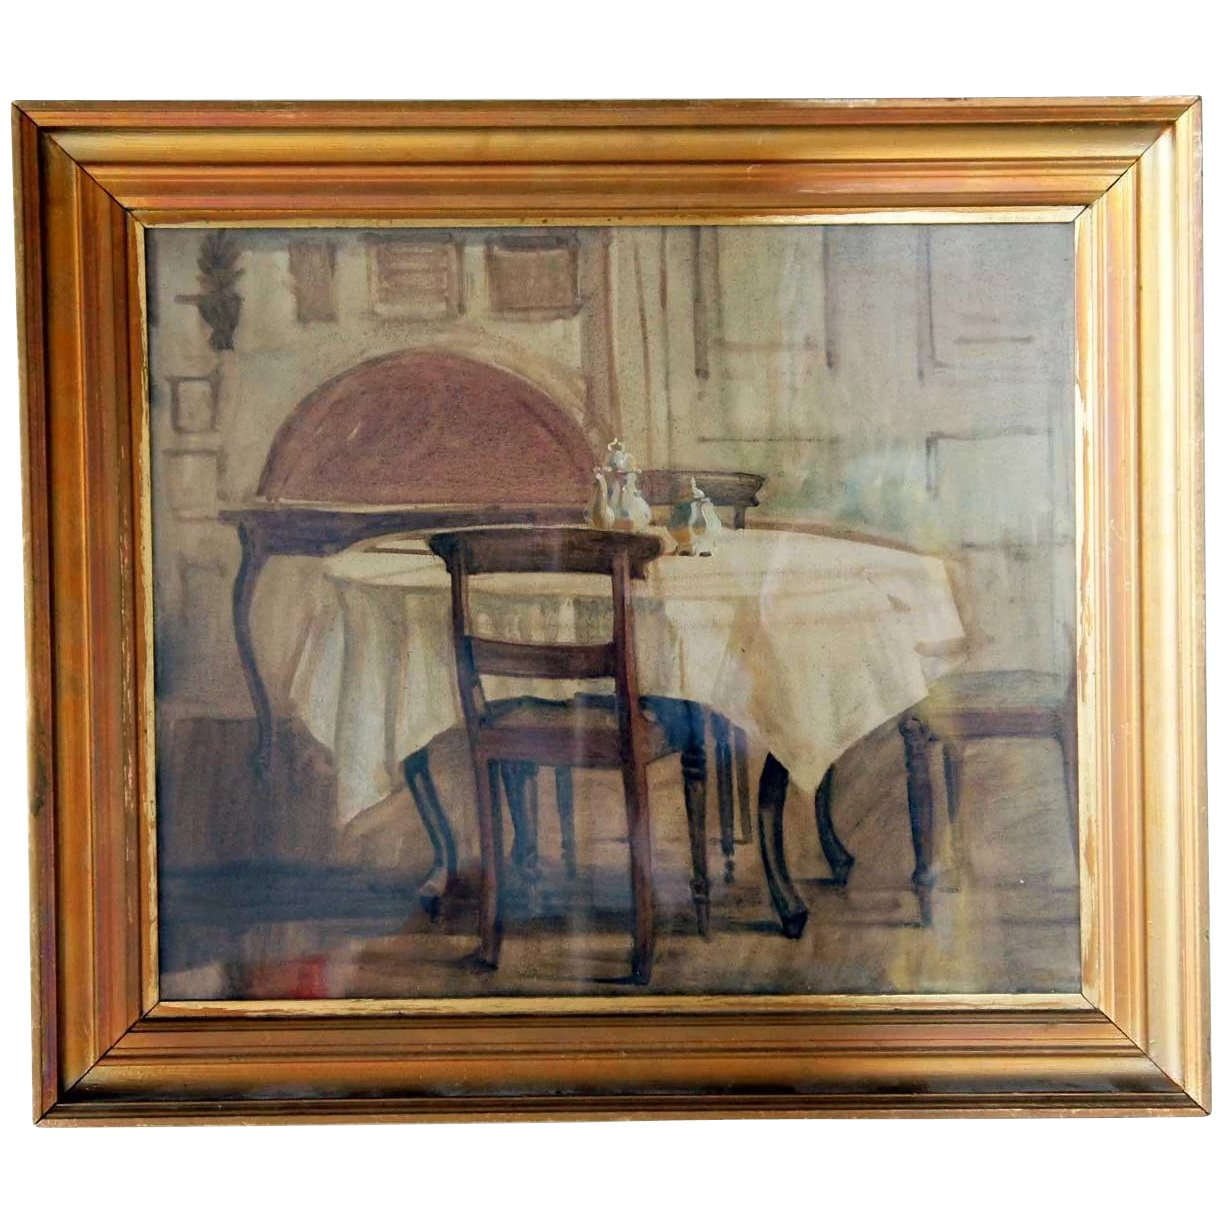 Knud Sinding Oil On Canvas Painting Interior Scene The